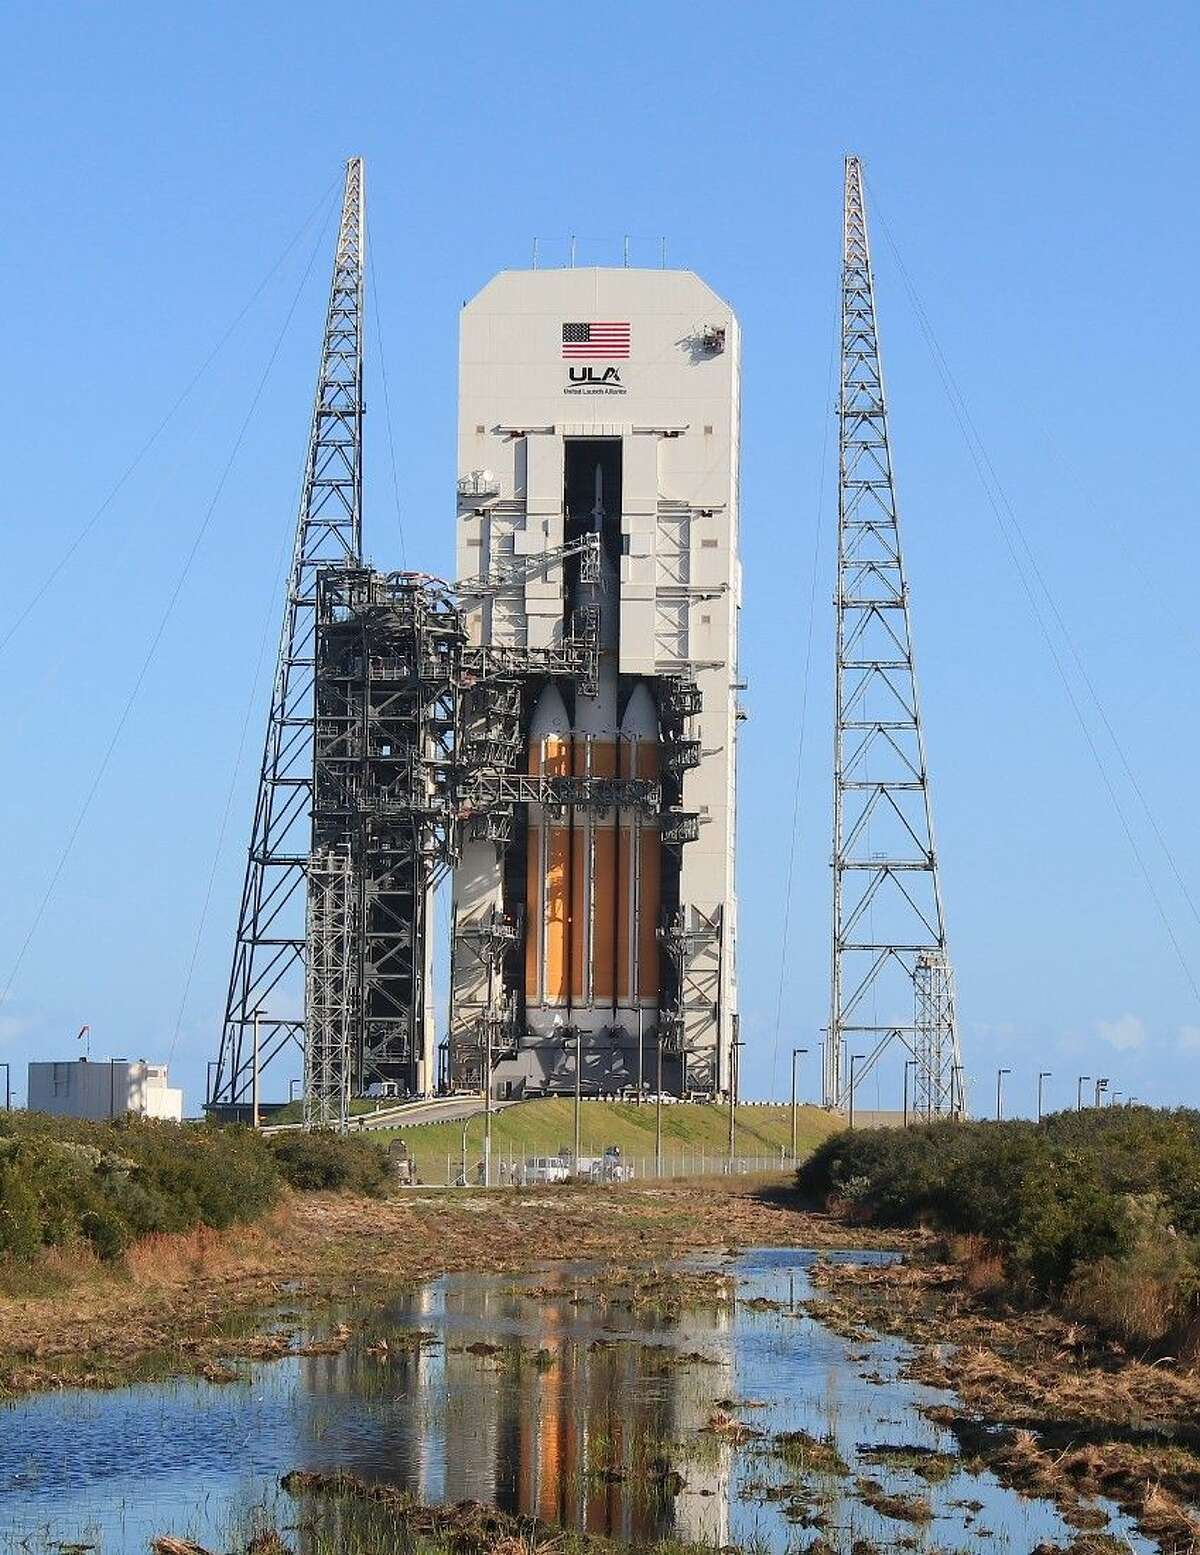 The United Launch Alliance launch pad with the Delta IV rockets and the Orion spacecraft.